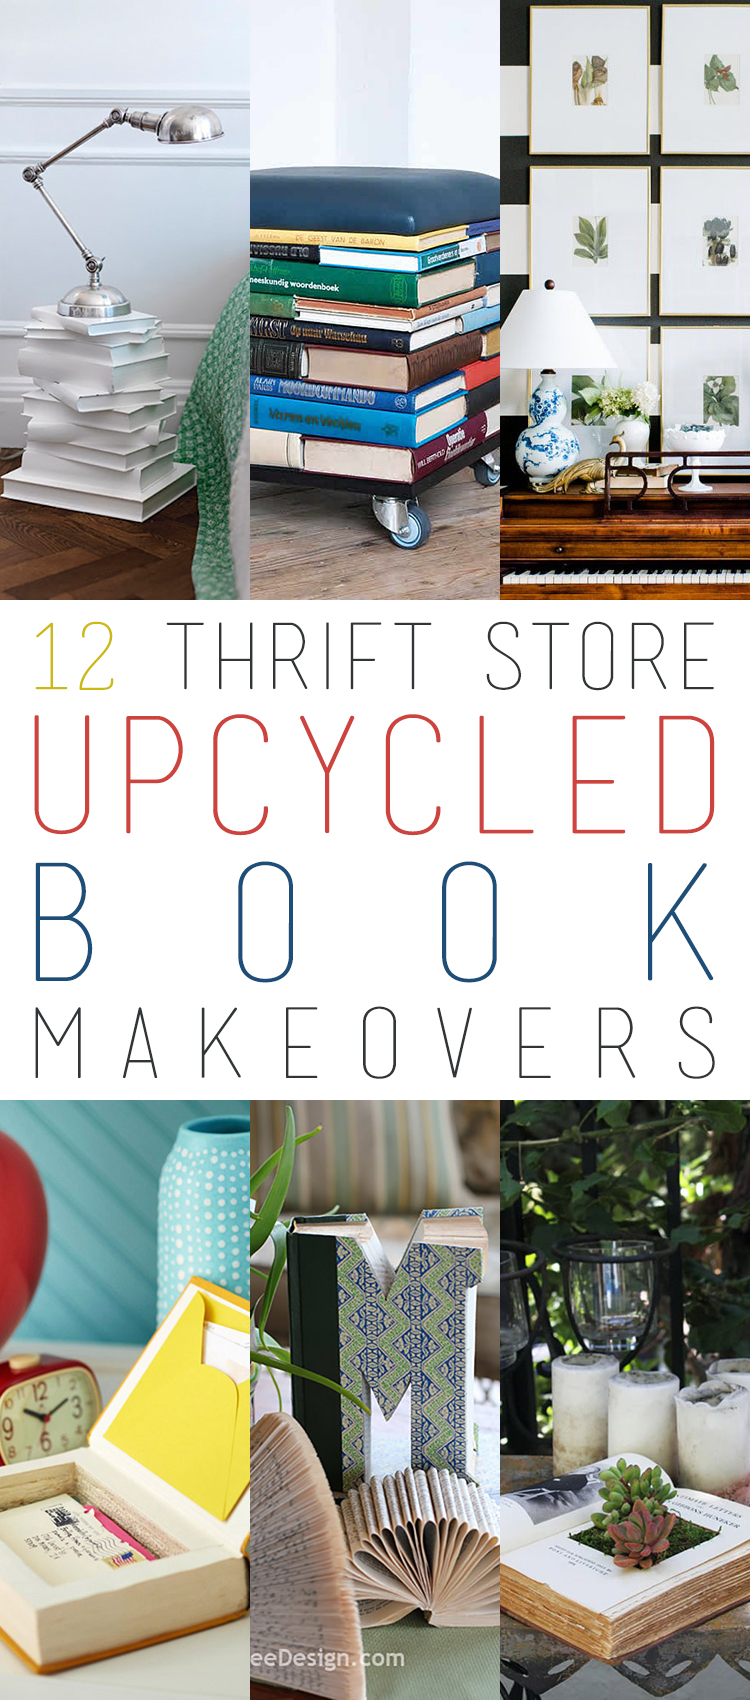 http://thecottagemarket.com/wp-content/uploads/2016/09/UpcycledBooks-TOWER-0001.jpg